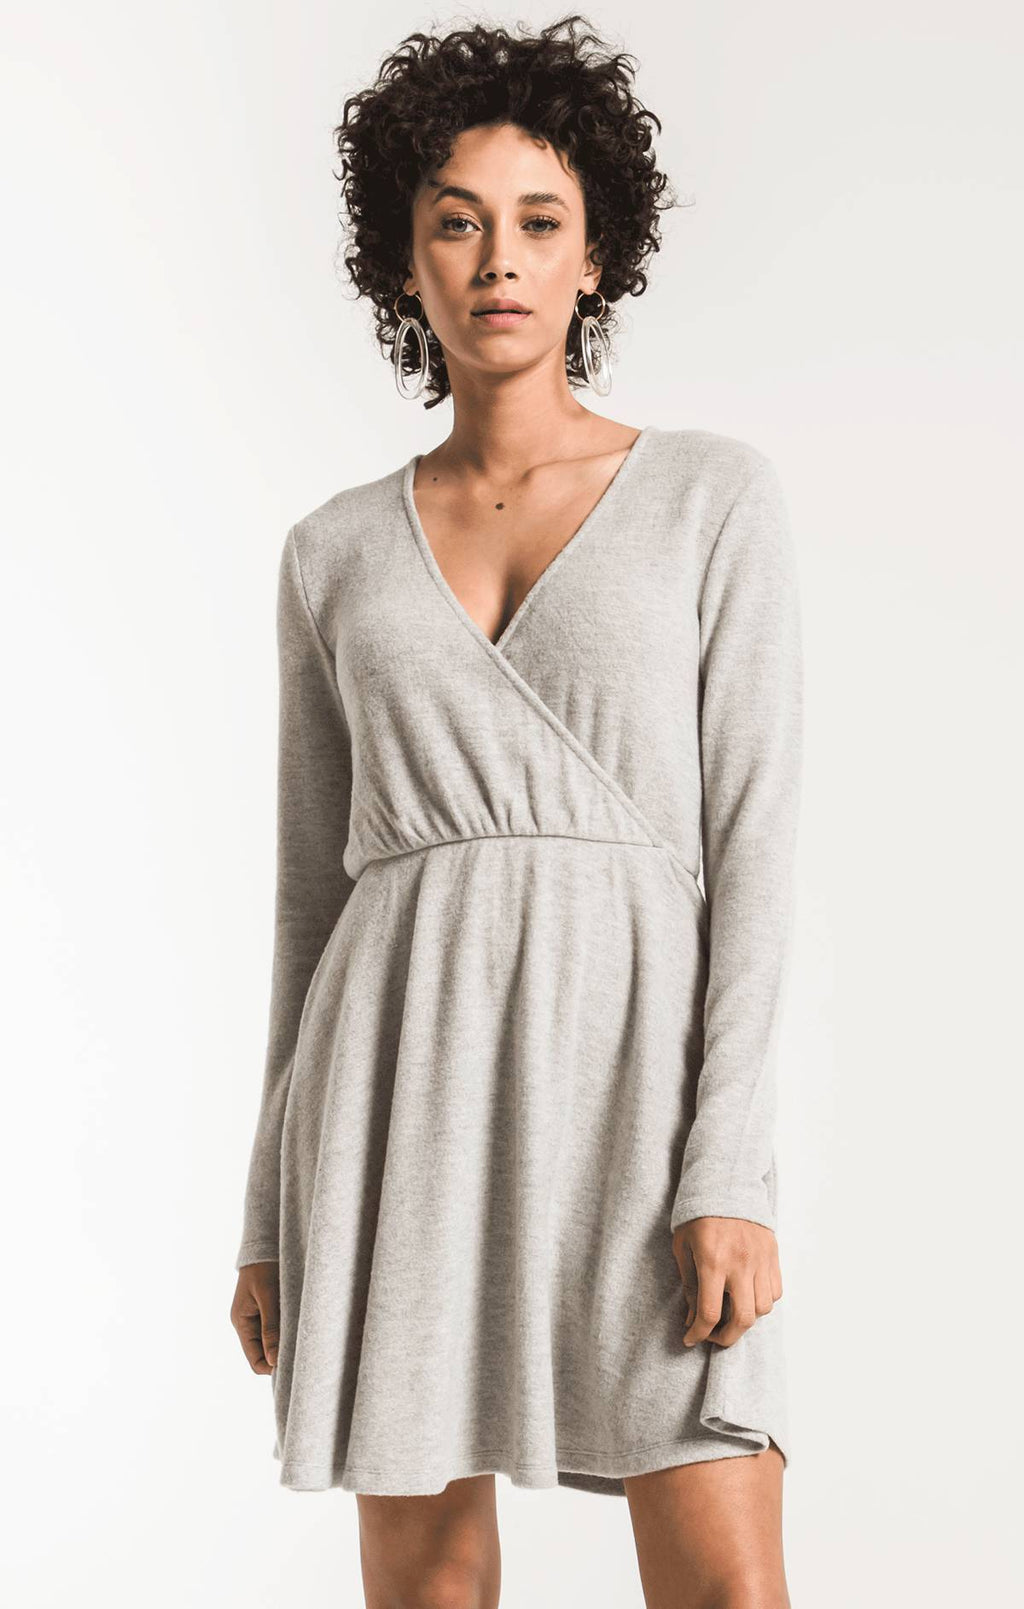 Z SUPPLY SOFT SPUN SURPLICE DRESS